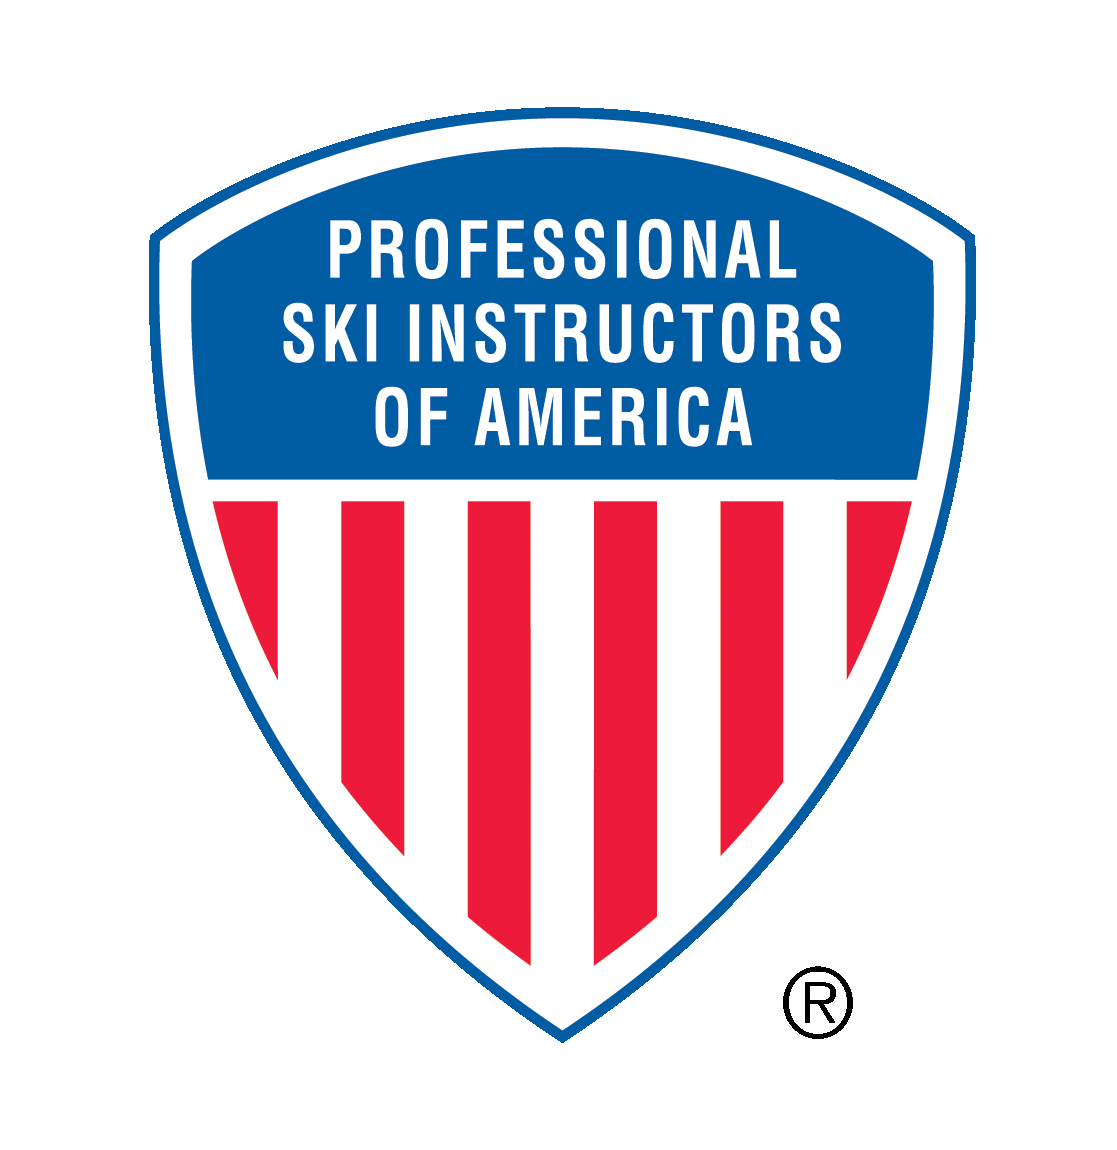 Professional Ski Instructors of America logo